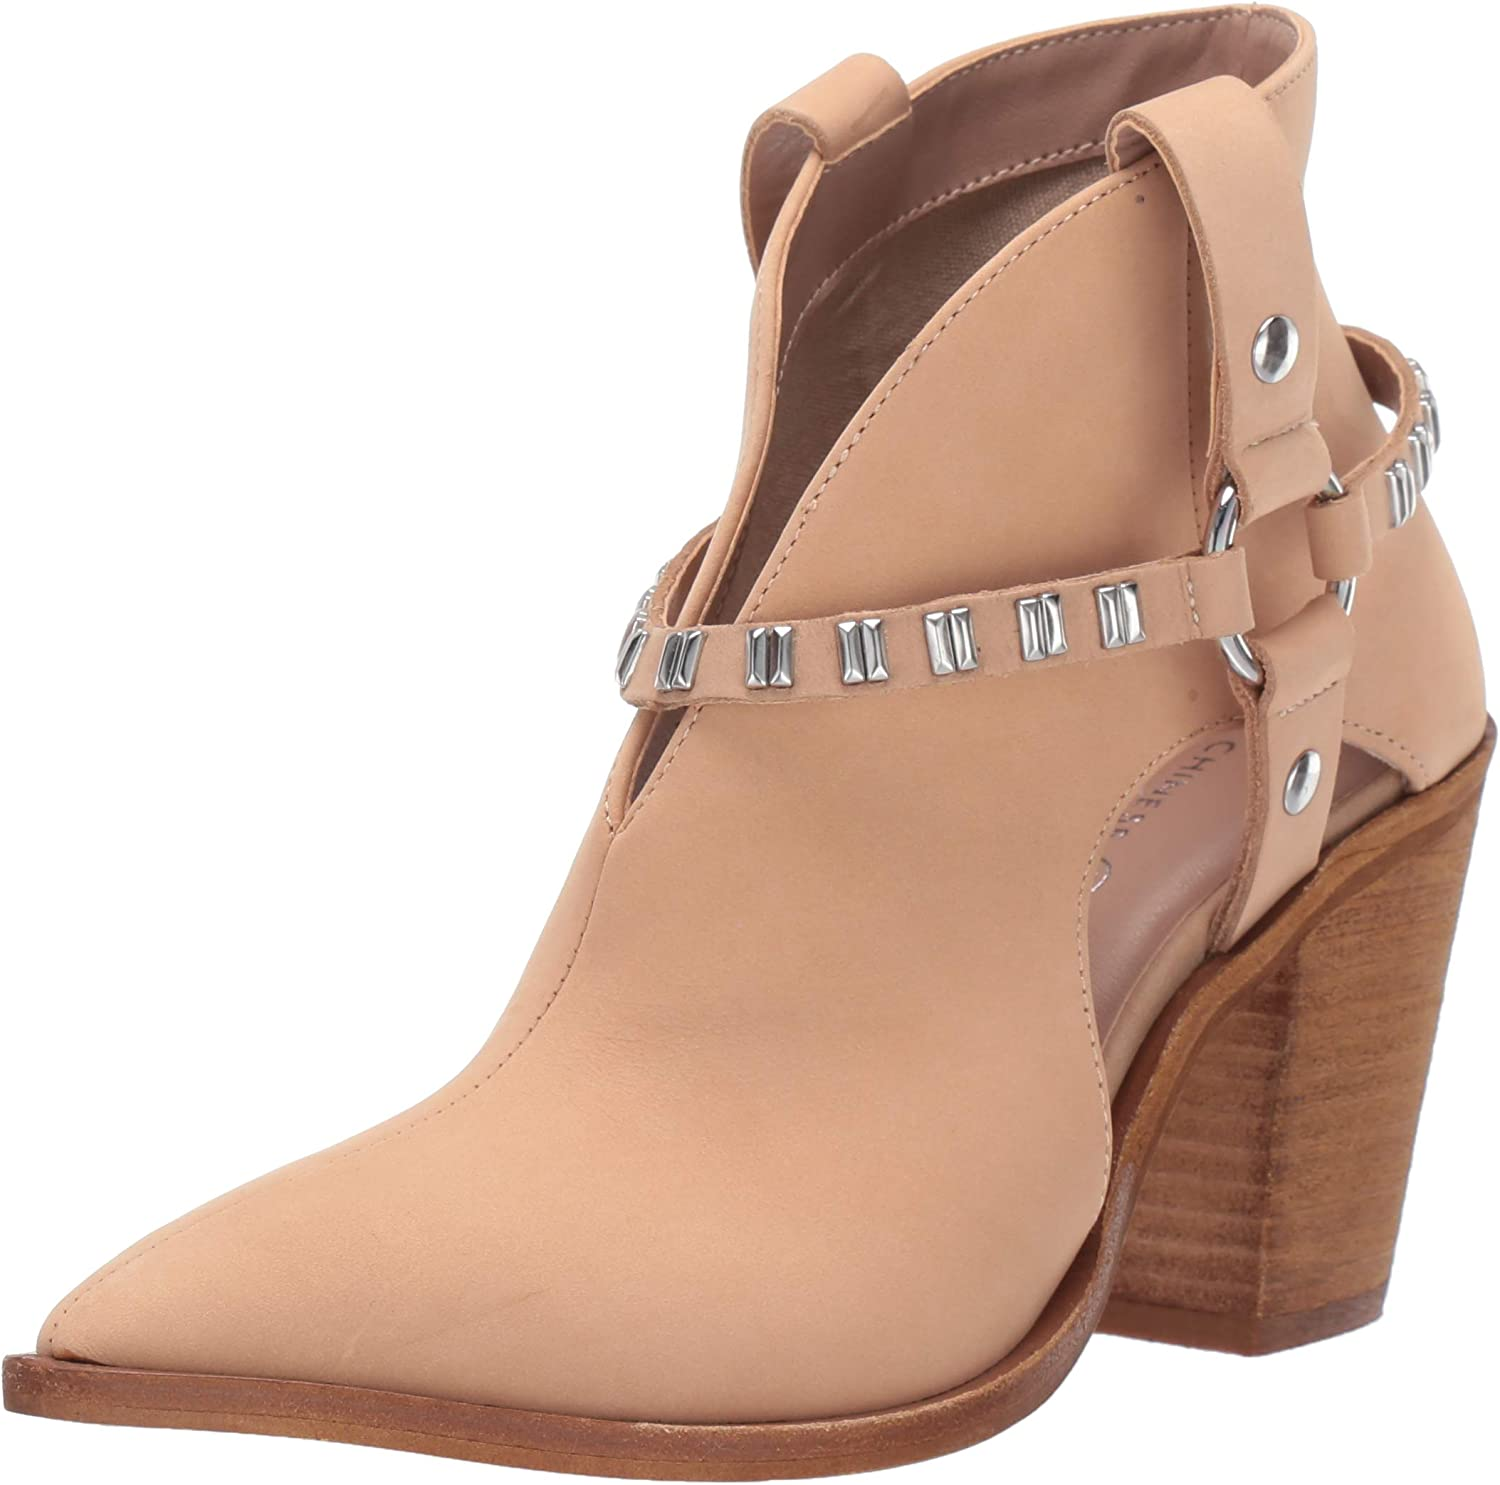 Chinese Laundry Women's Tabby Ankle Boot